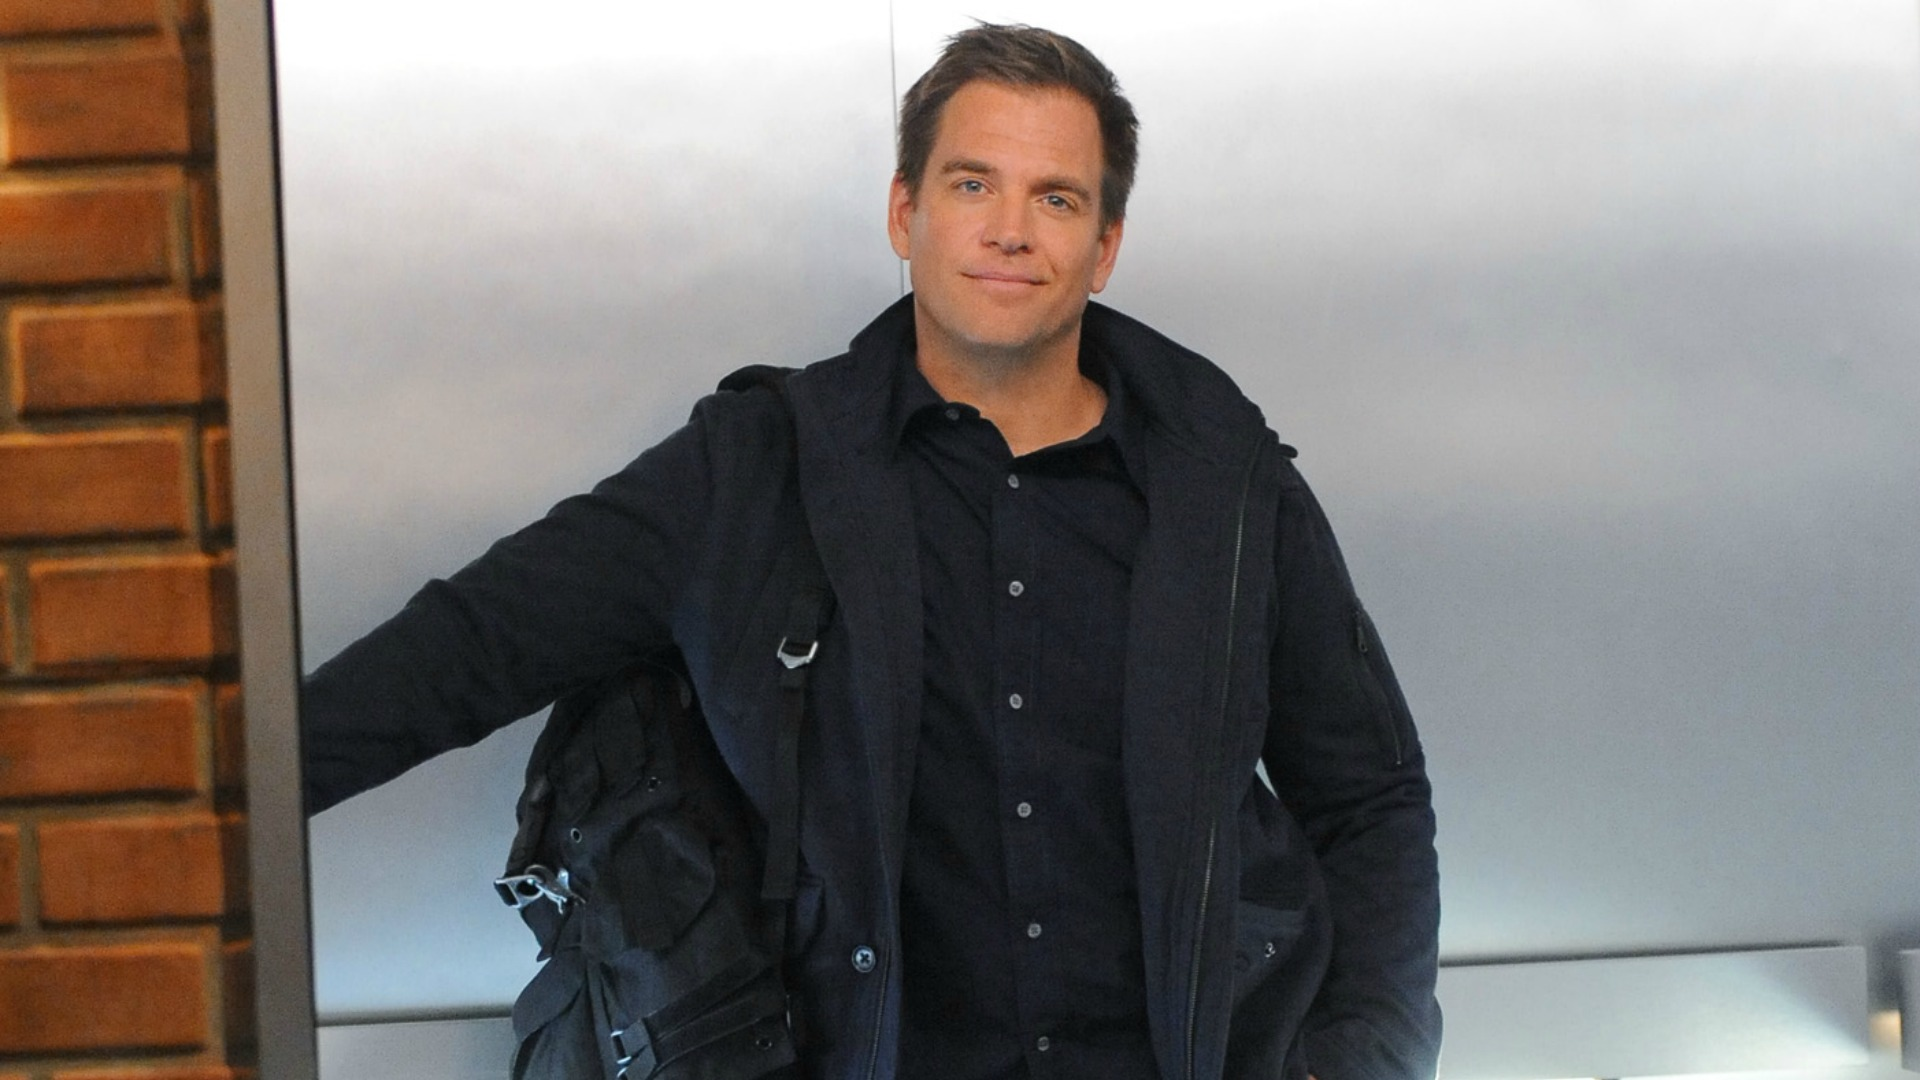 8. He's not as big of a movie buff as DiNozzo.